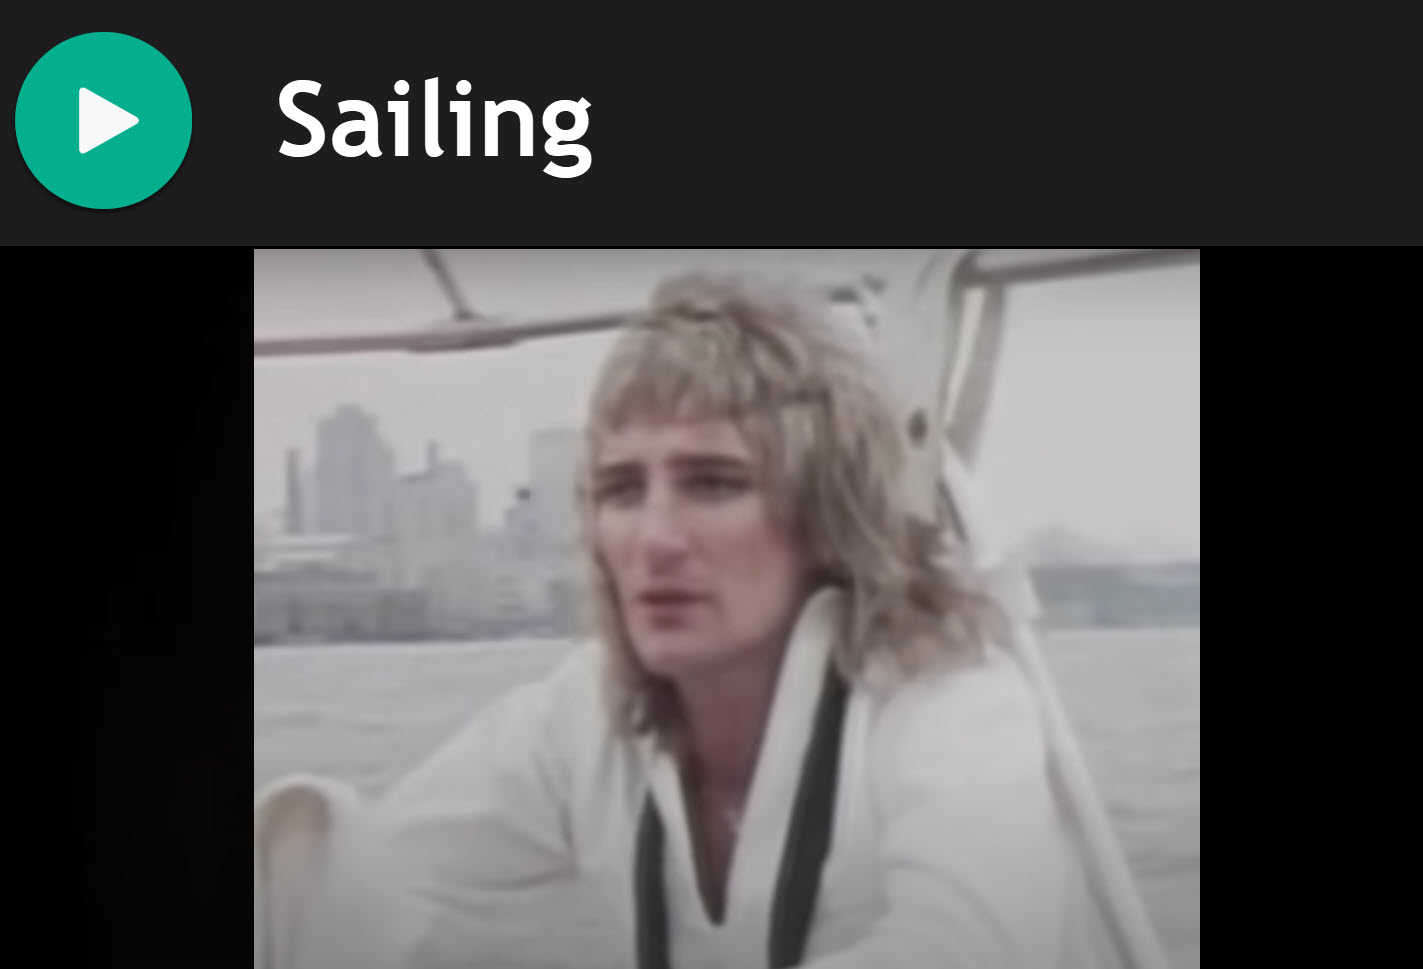 Sailing by Rod Stewart for Bagpipes